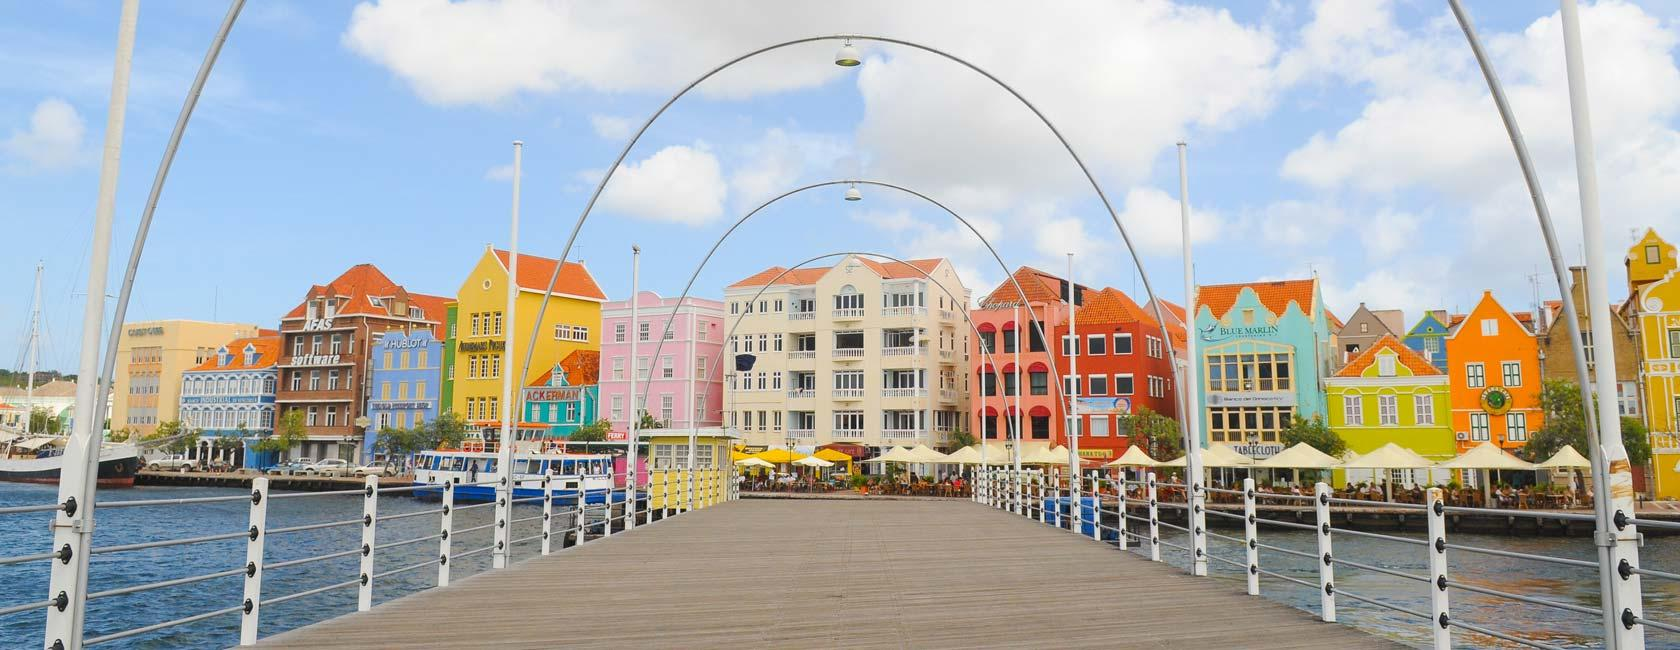 Destination Spotlight-Curacao